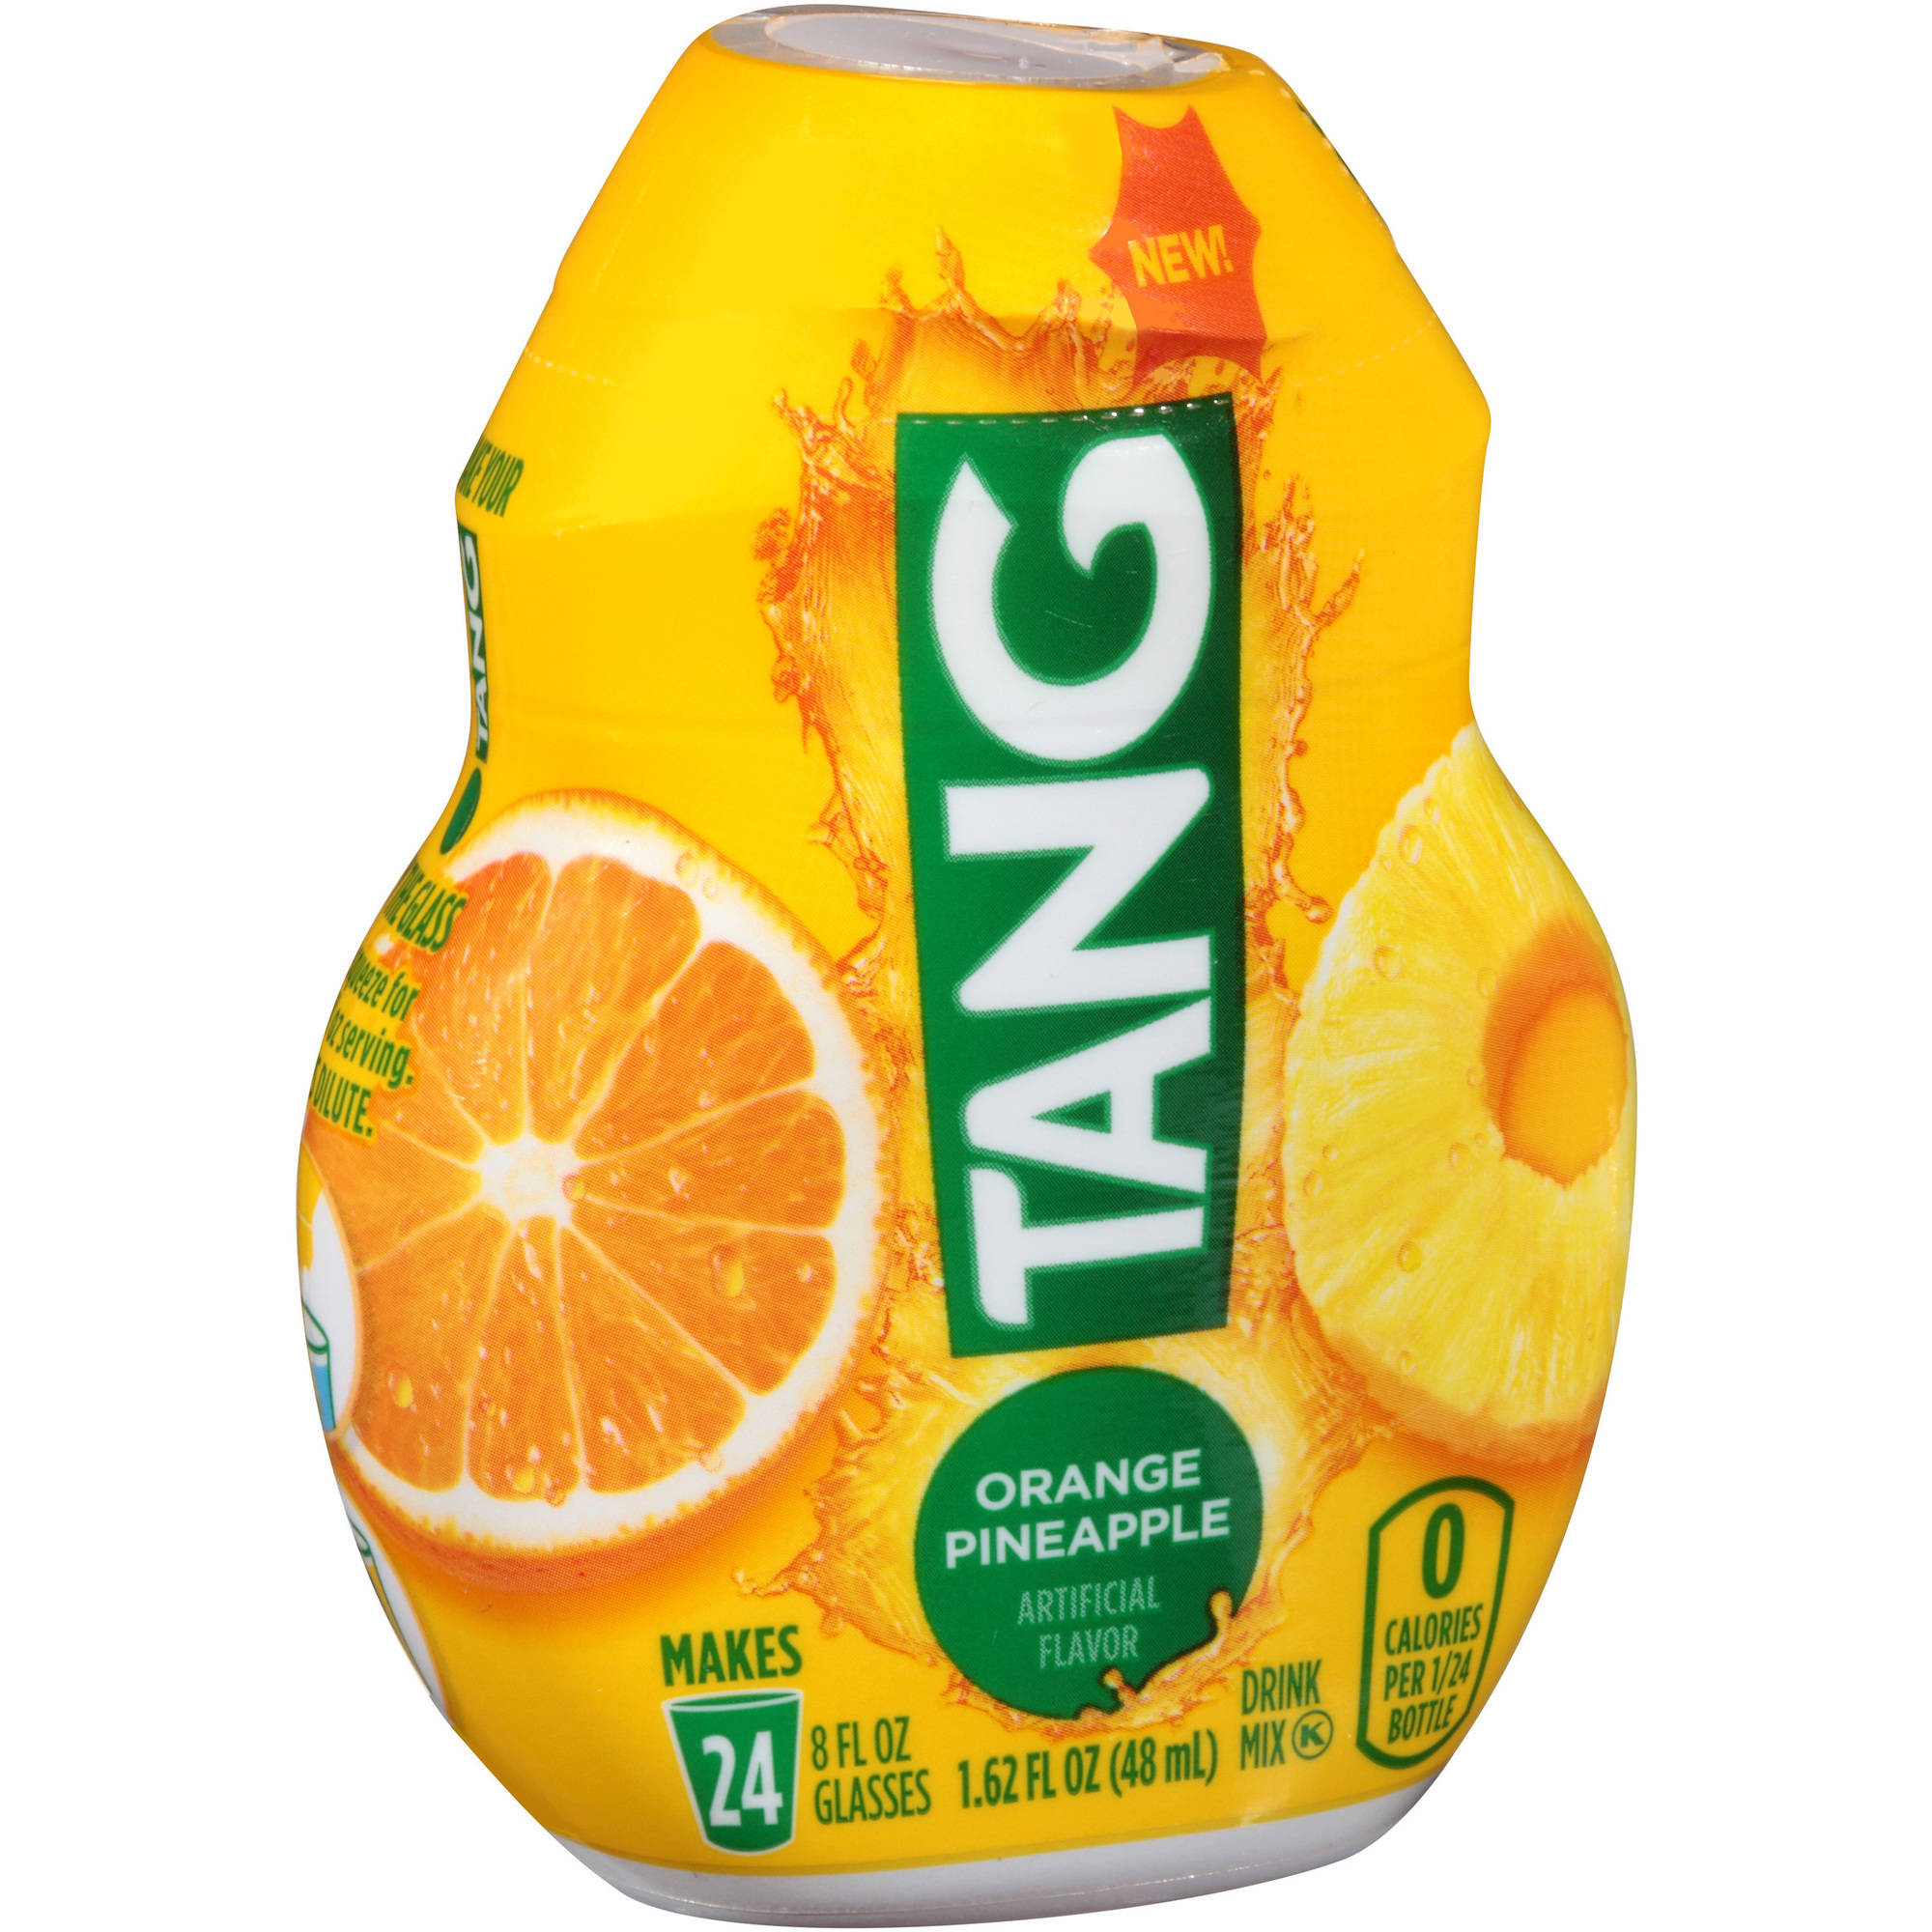 Tang Orange Pineapple Liquid Drink Mix, 1.62 fl oz